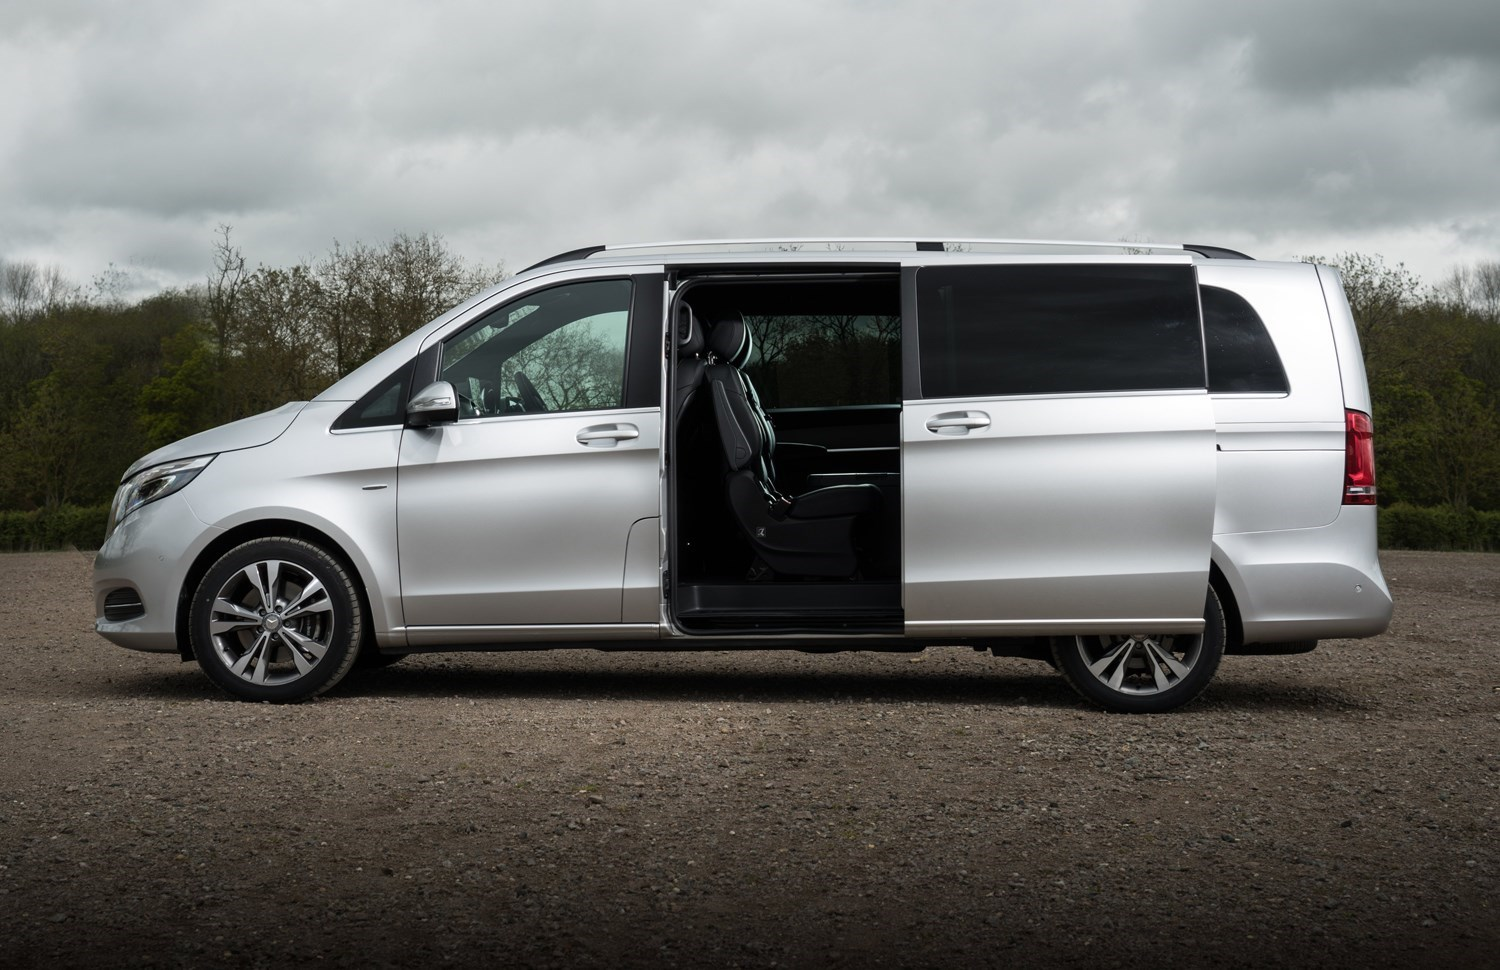 Cars for twins and a toddler - Mercedes V-Class